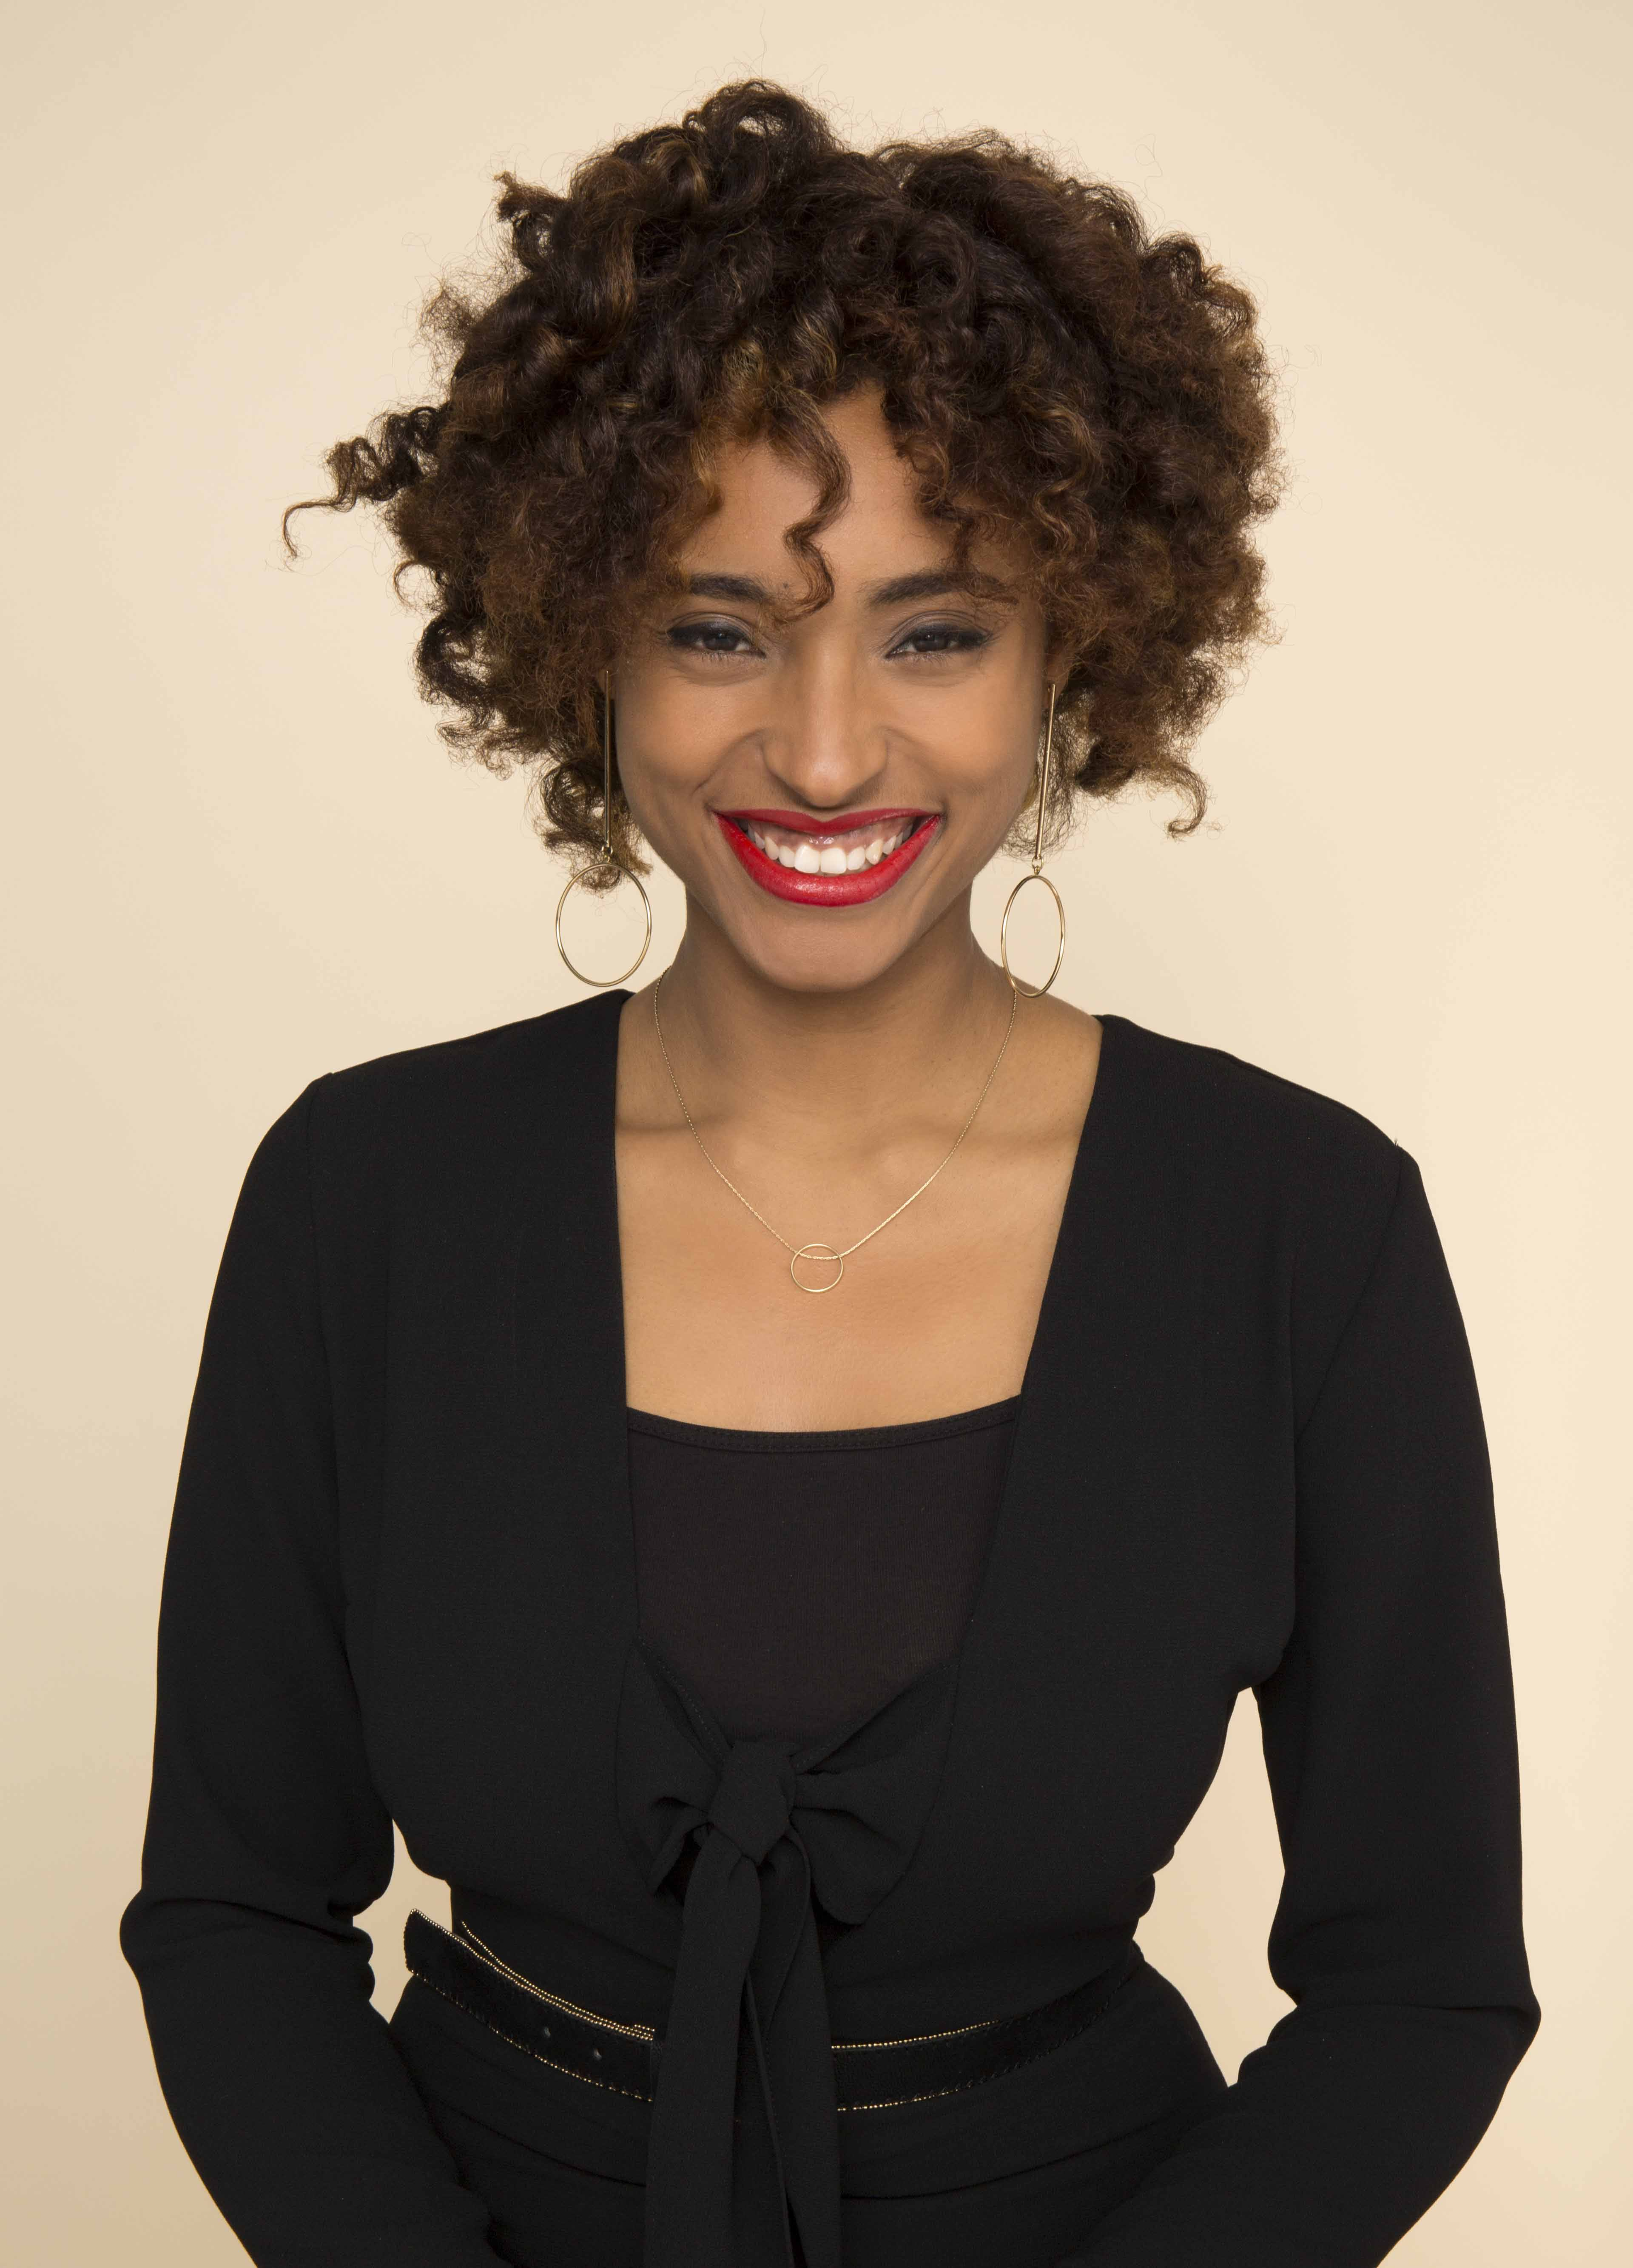 Flexi rods give you sexy defined curls without heat baditri Choice Image